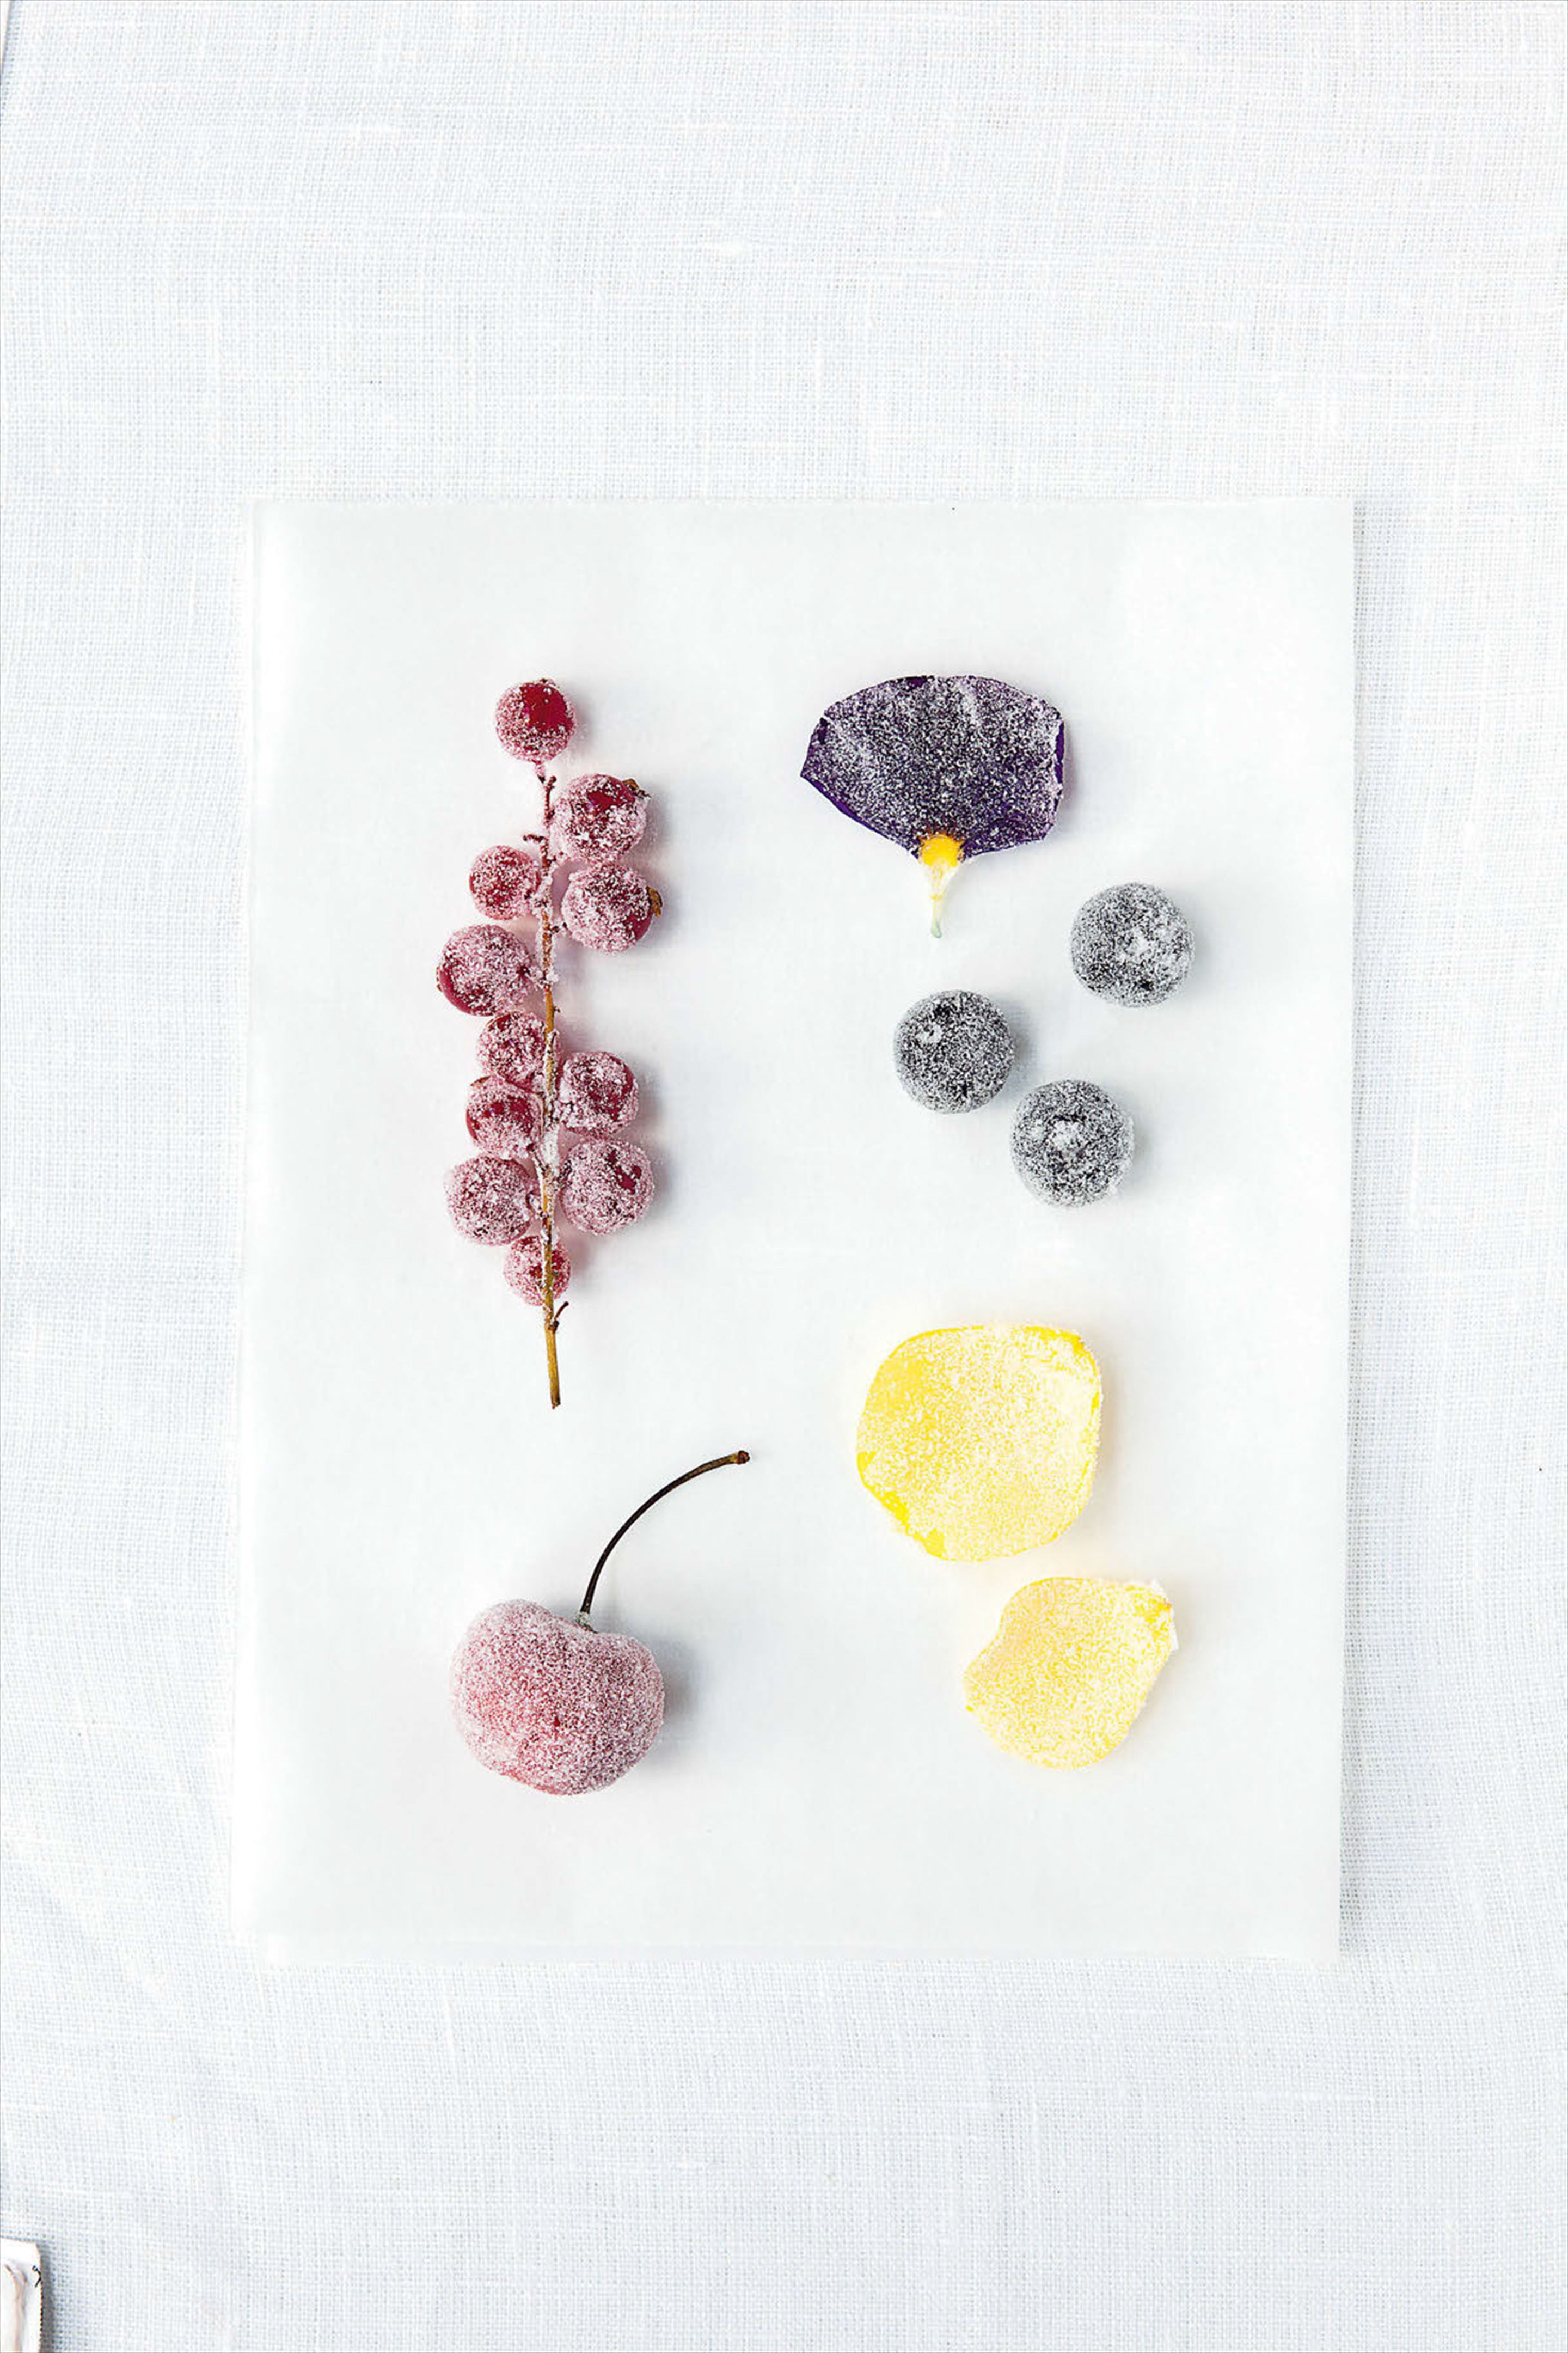 Crystallised flower petals and fruits